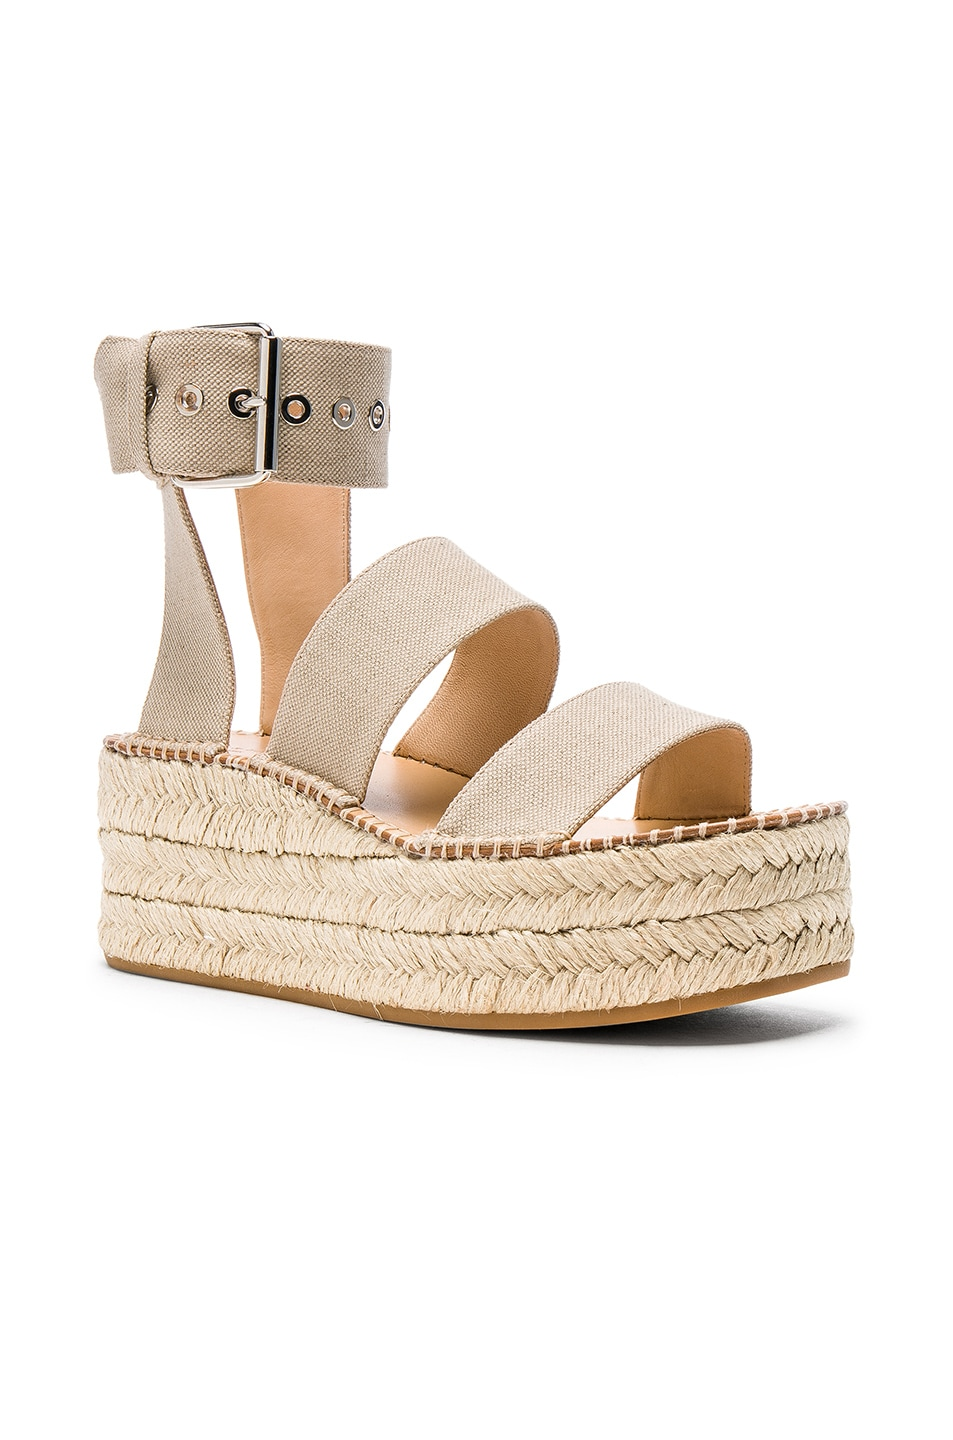 Image 2 of Rag & Bone Canvas Tara Sandals in Natural Canvas